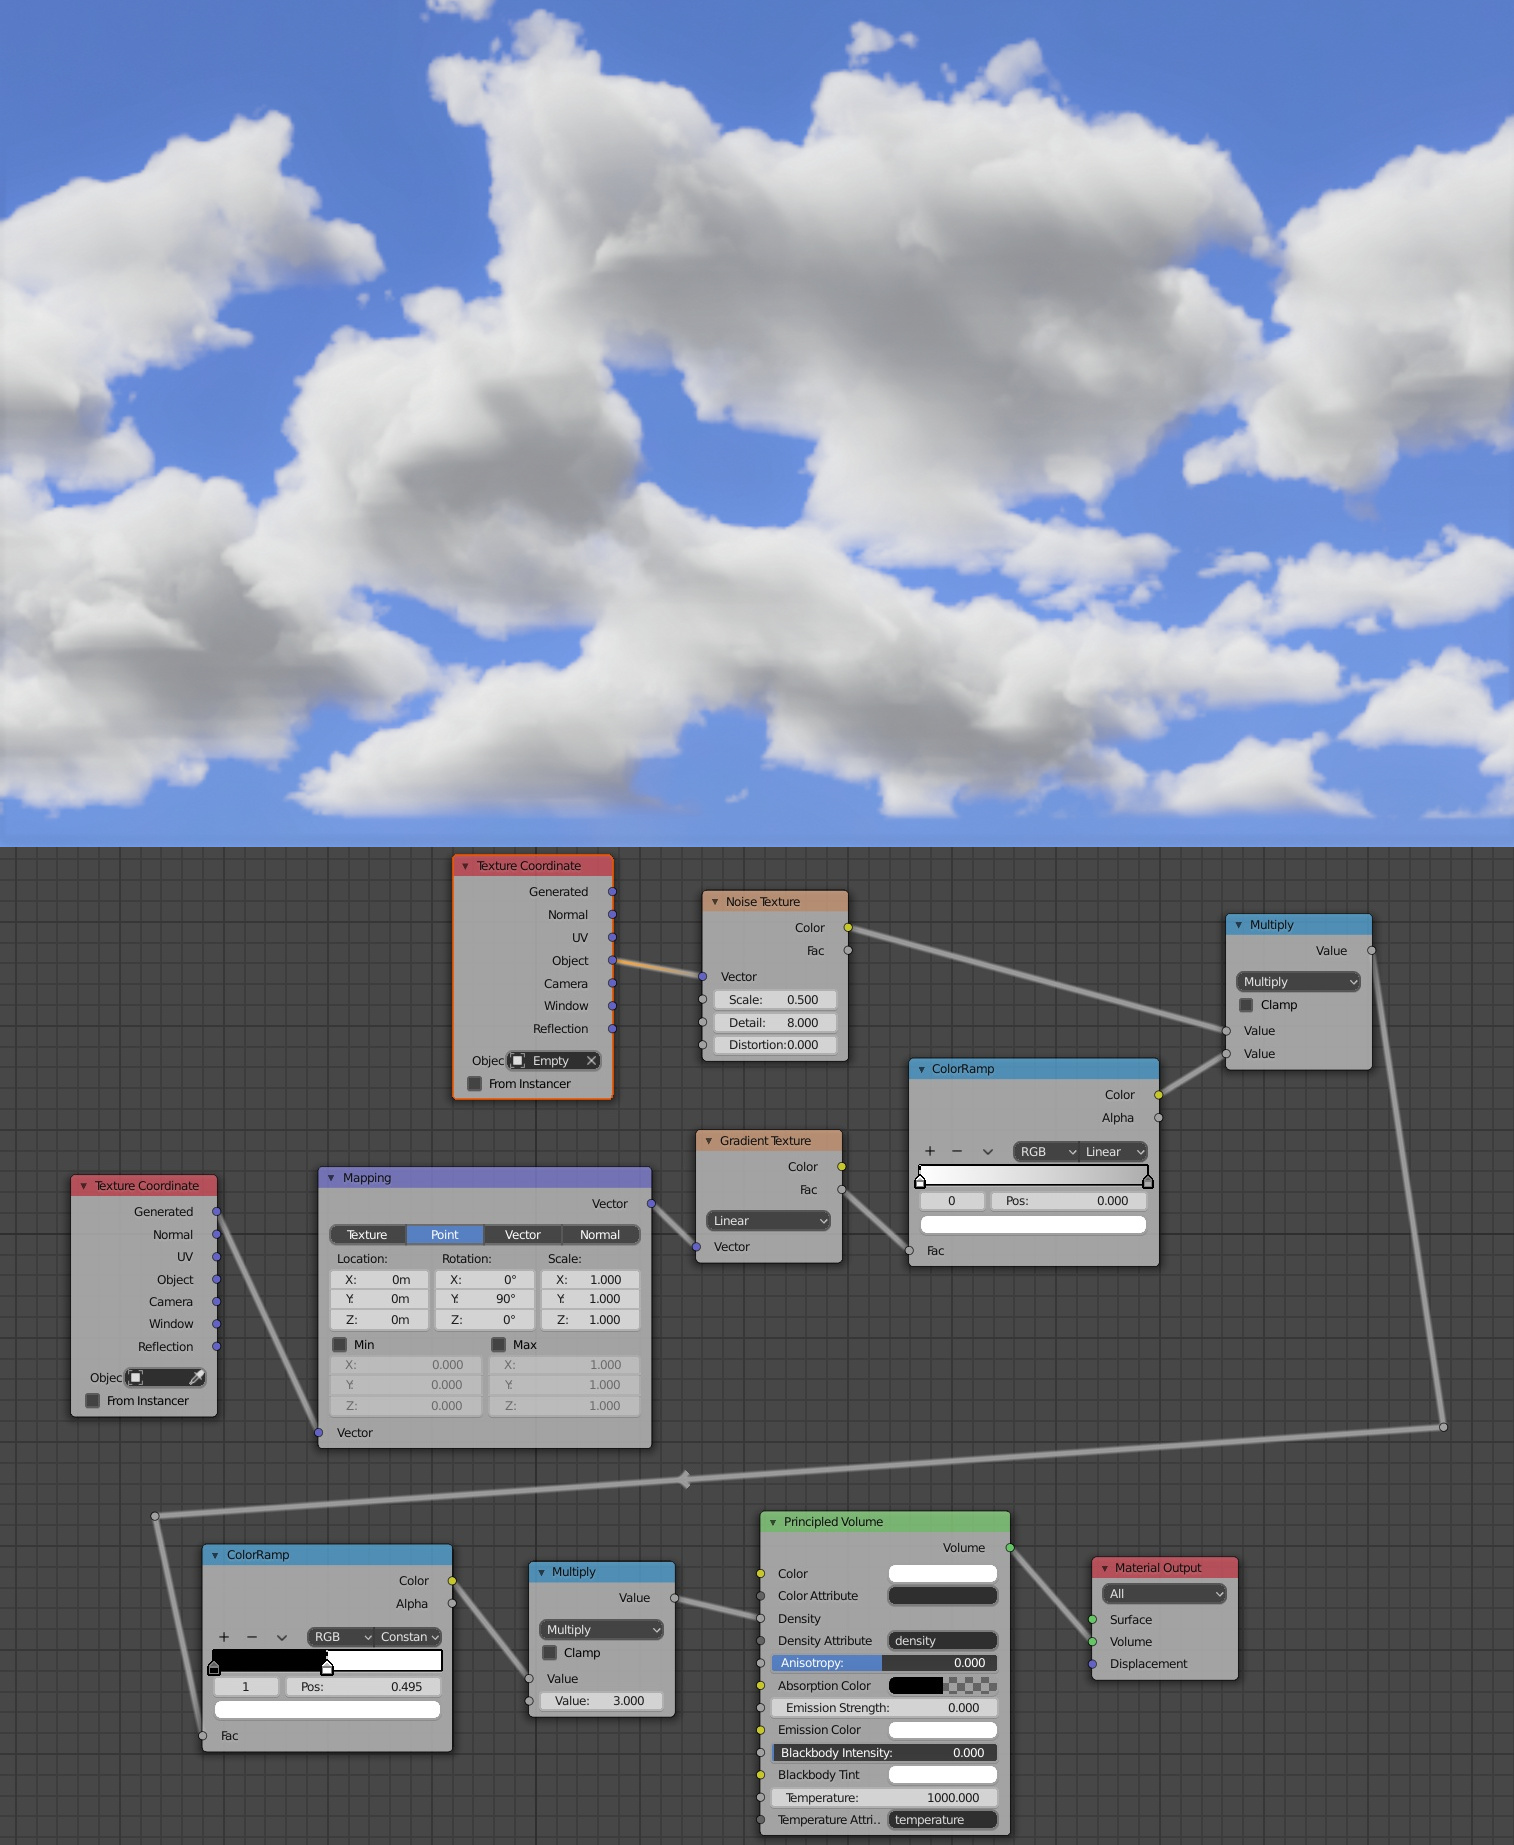 Blender Eevee procedural volumetric cloud node by namito111 on